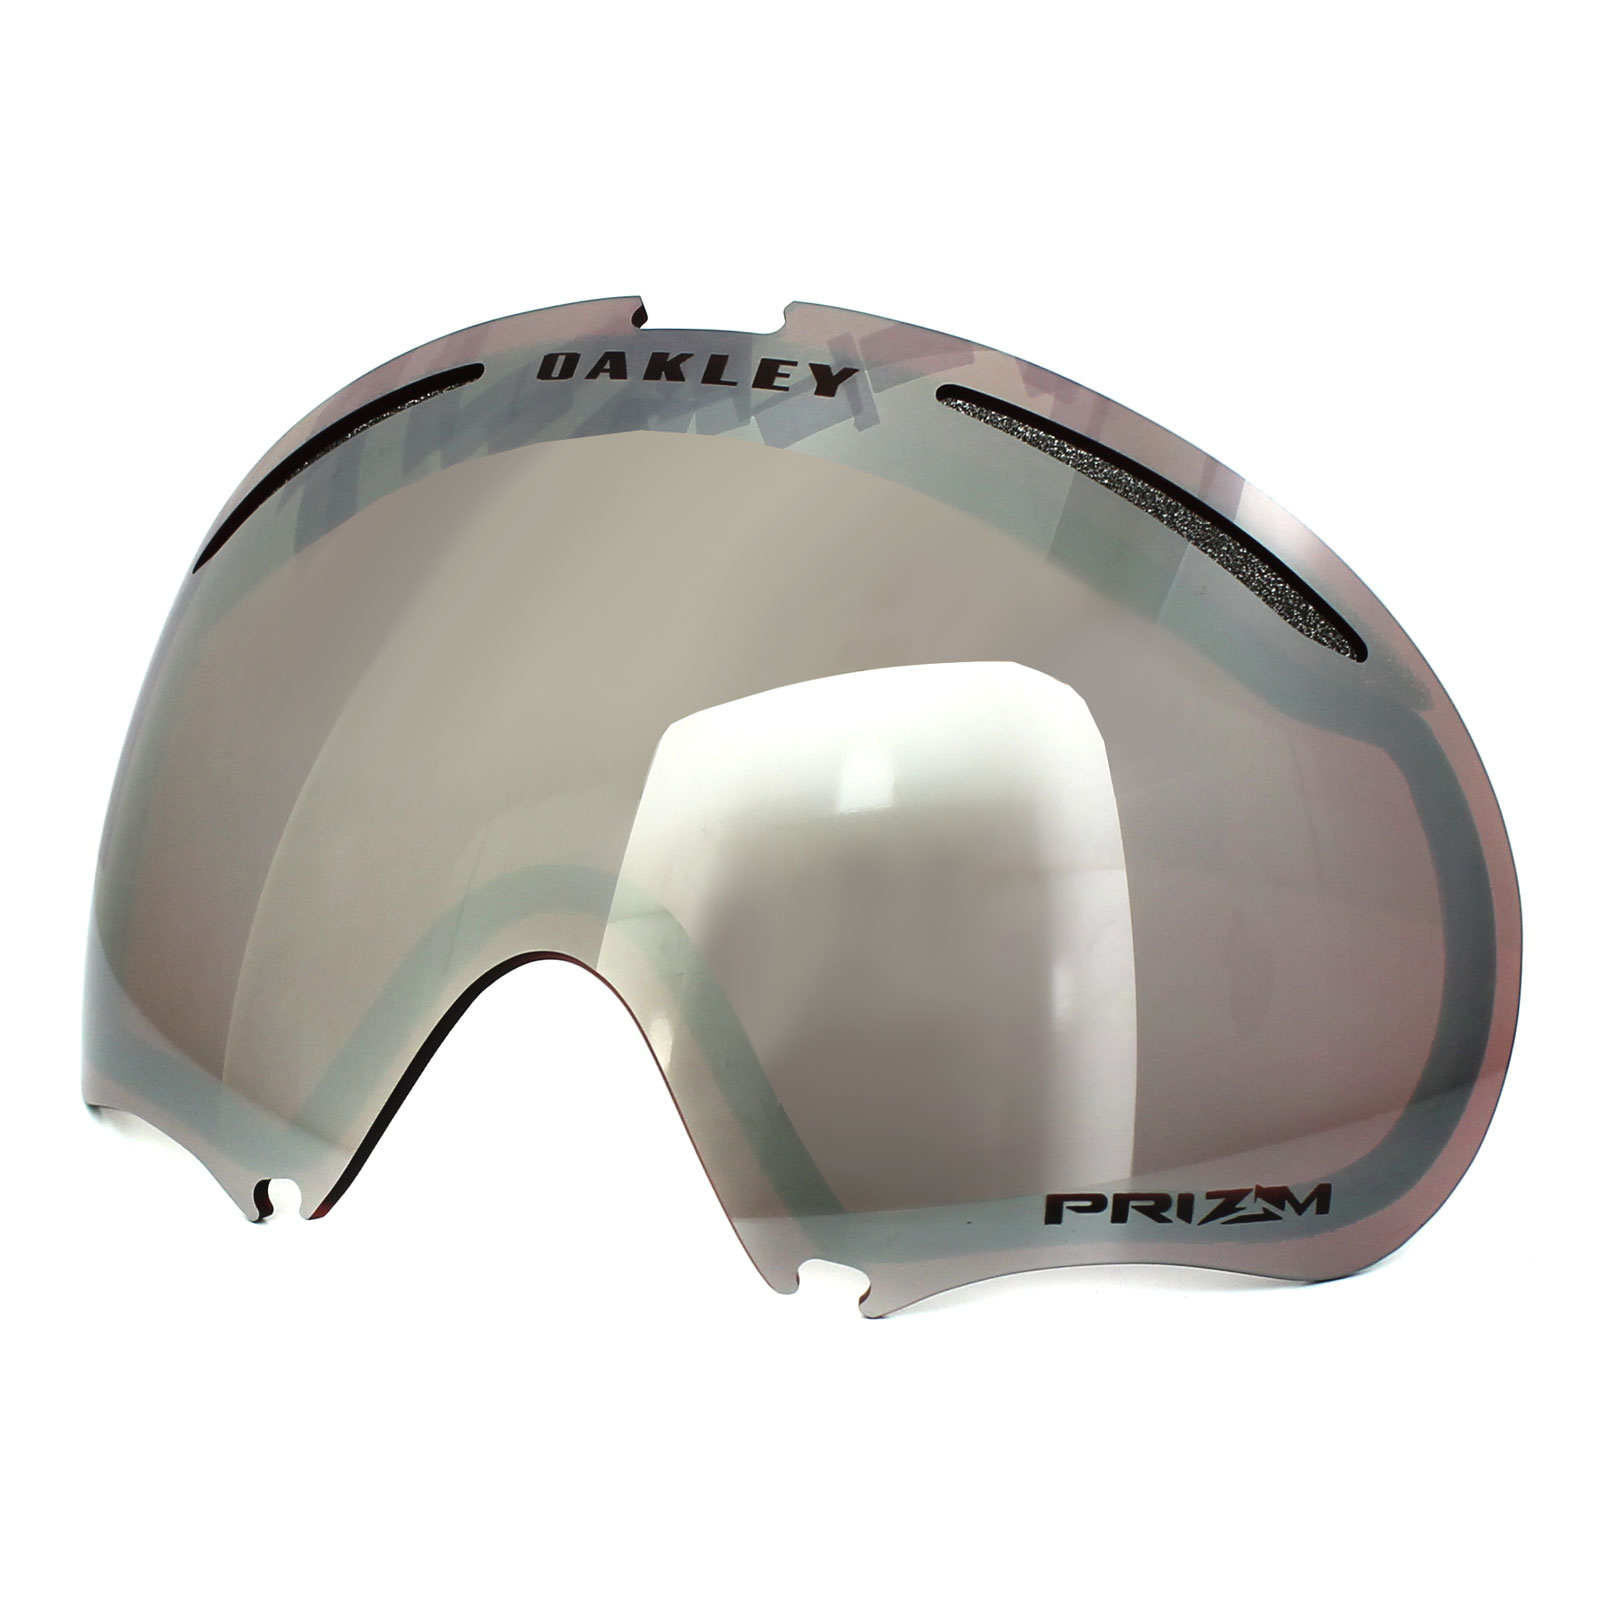 Oakley E Frame Snow Goggles Review | www.tapdance.org